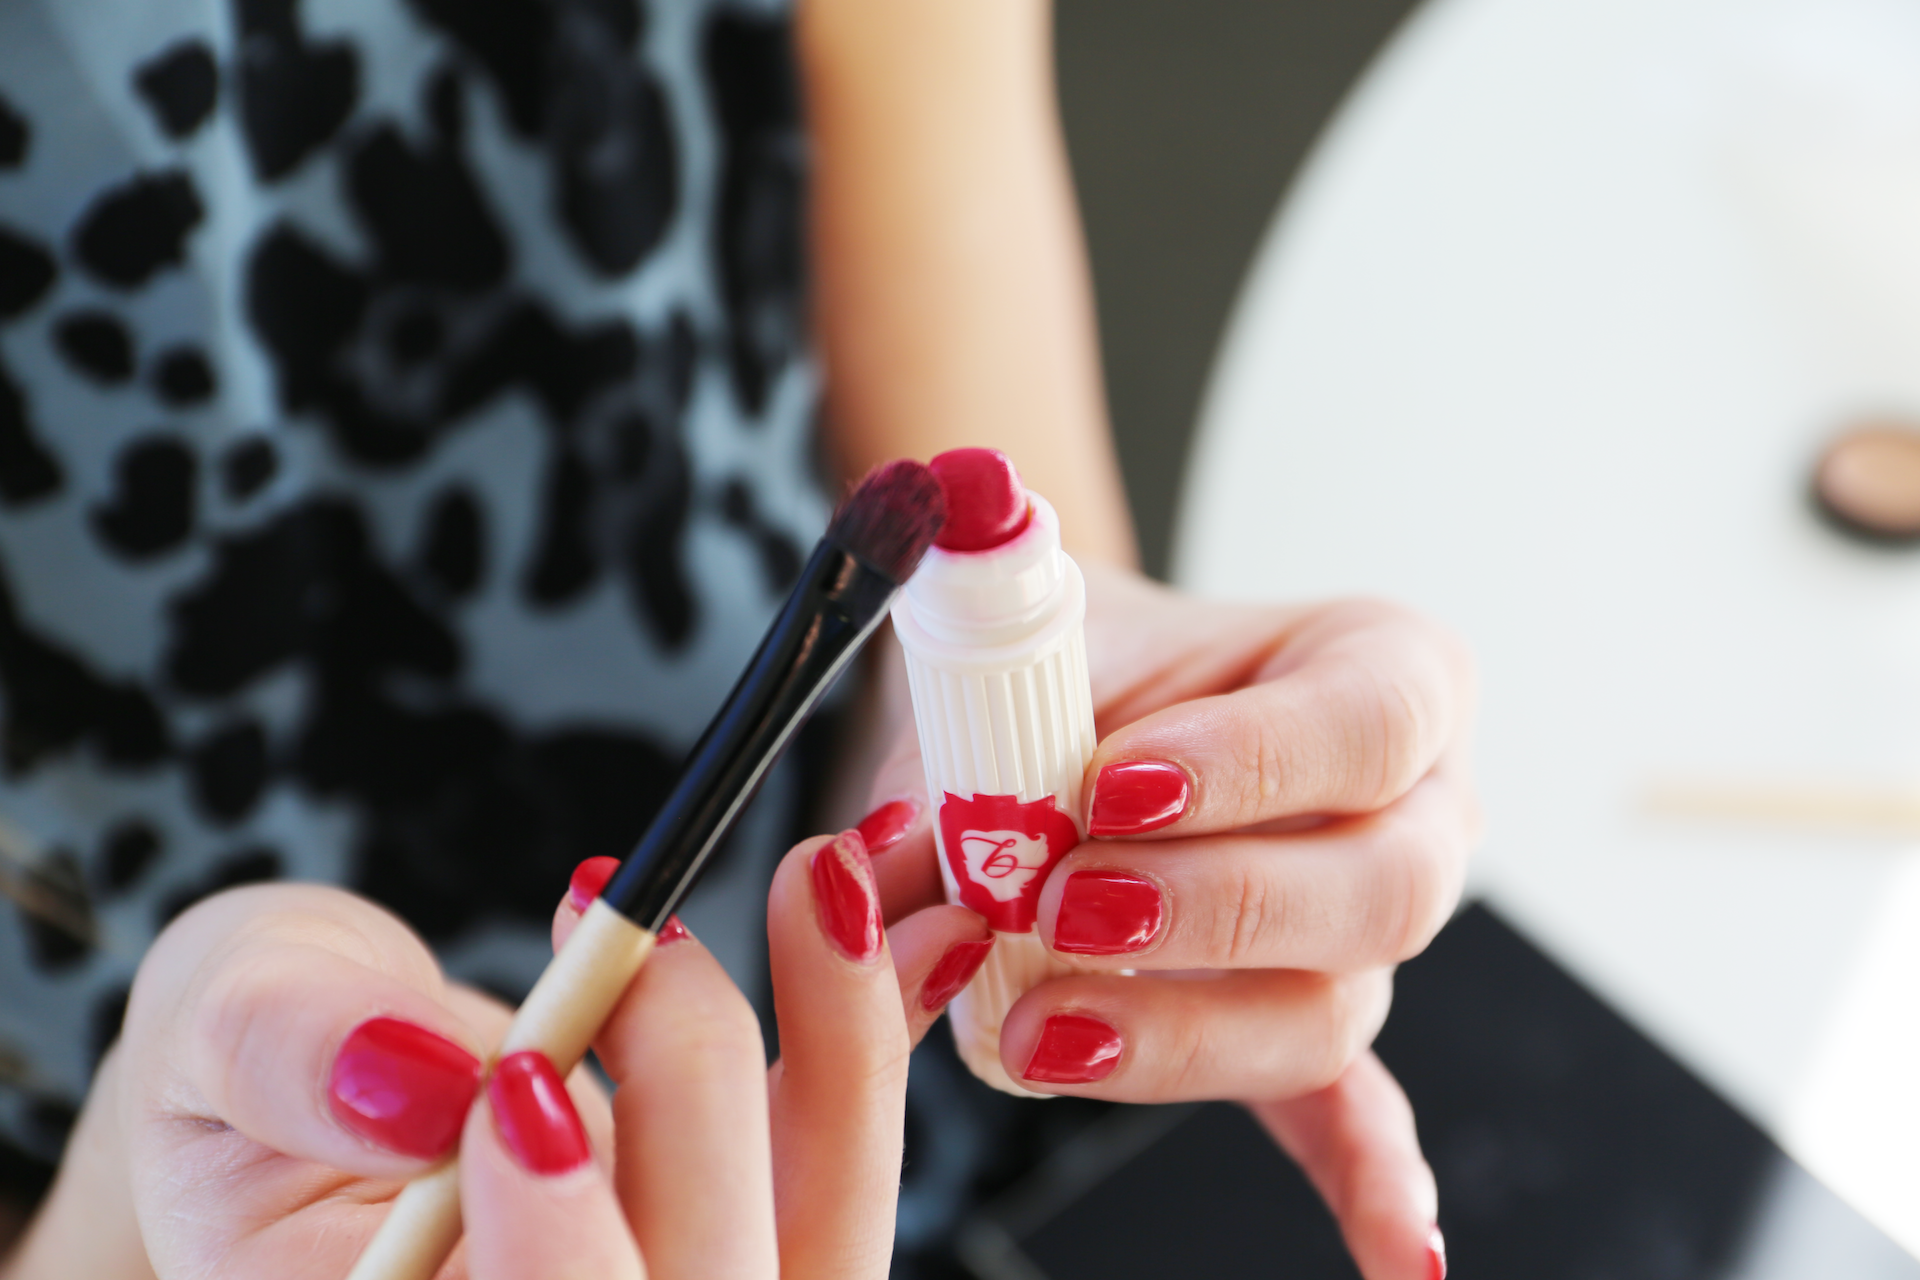 A smaller make-up brush is used to apply the lipstick outline